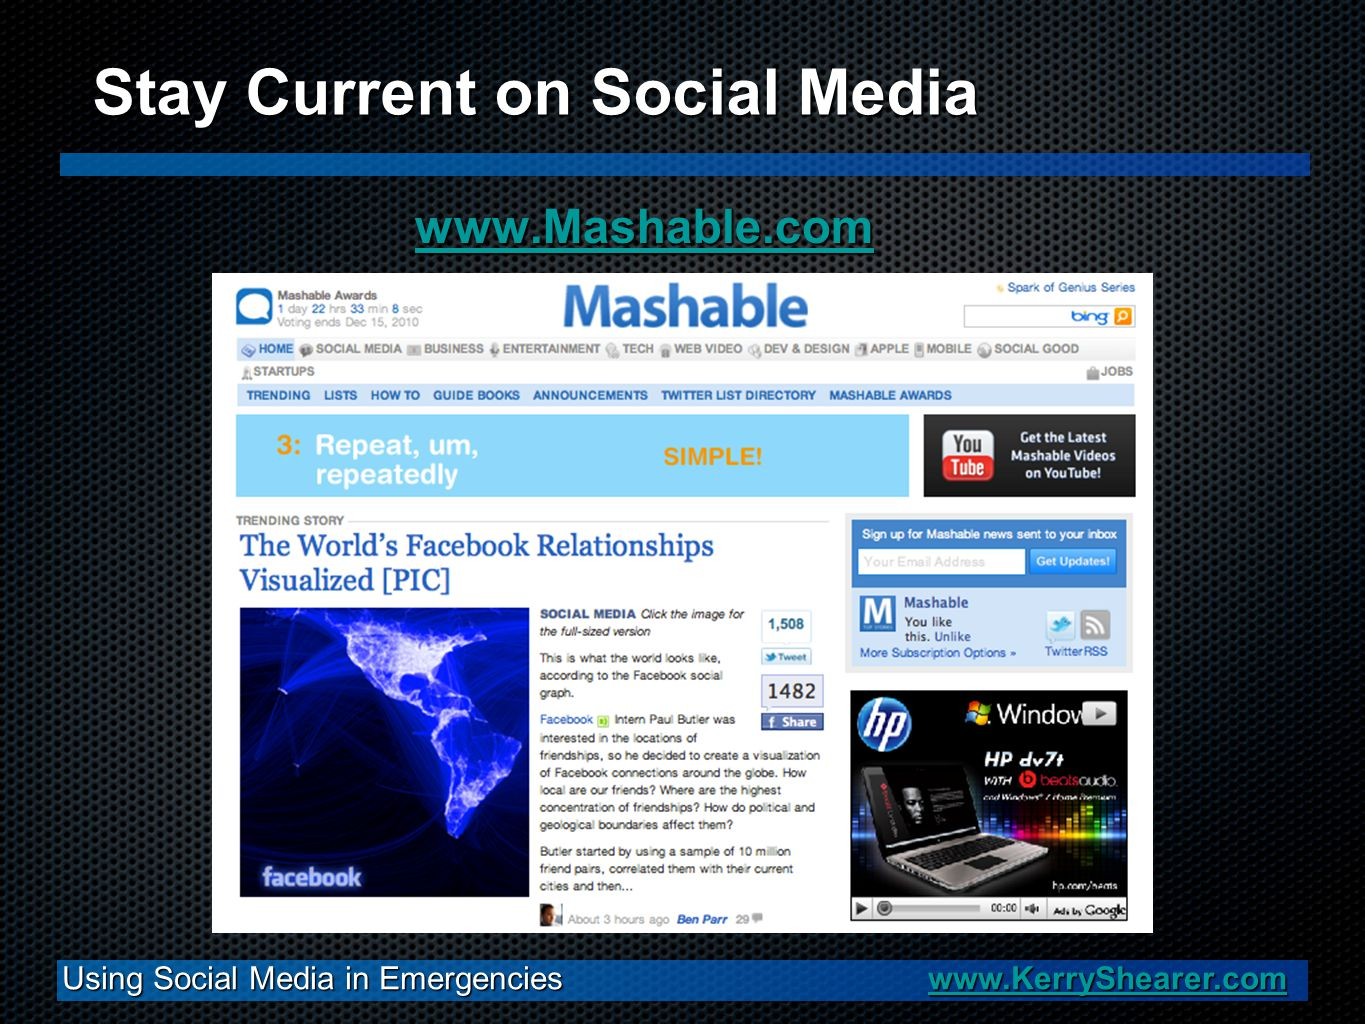 www.Mashable.com Using Social Media in Emergencies www.KerryShearer.com www.KerryShearer.com Stay Current on Social Media